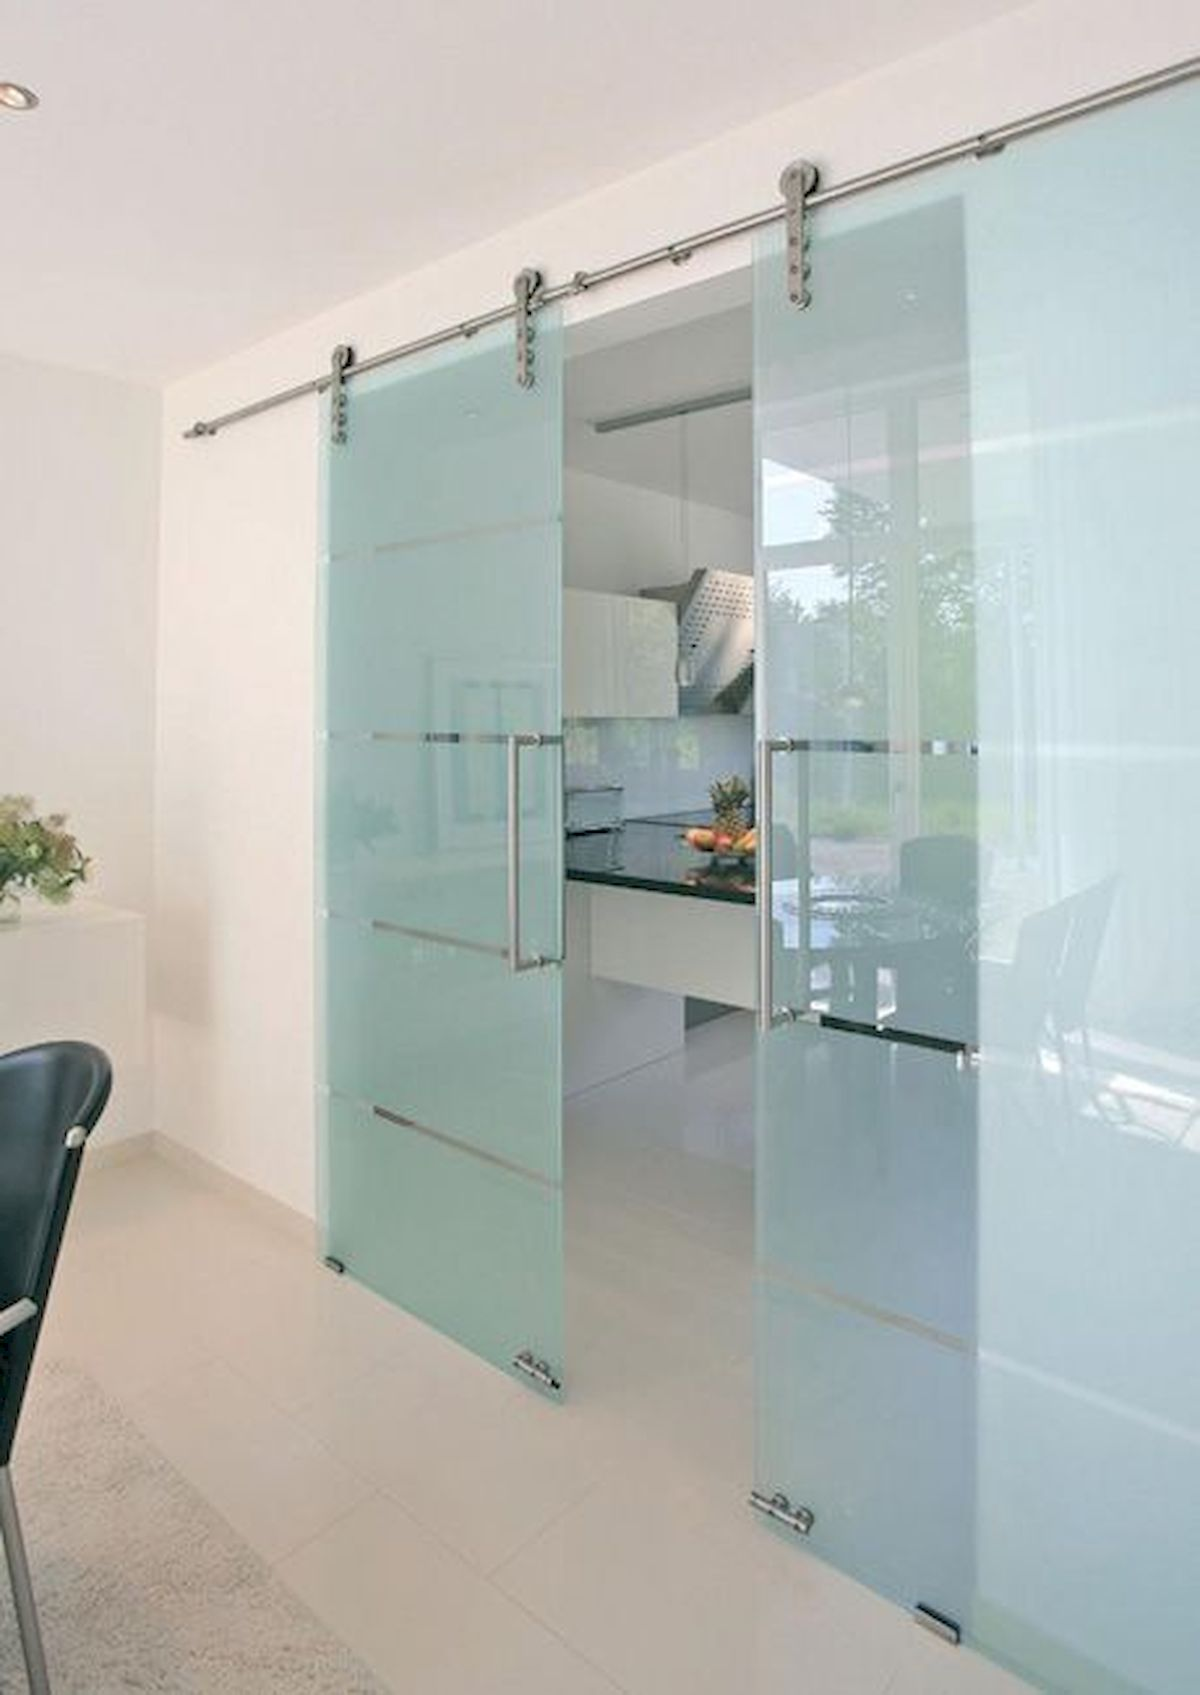 50 Most Popular Sliding Doors Design Ideas (32)